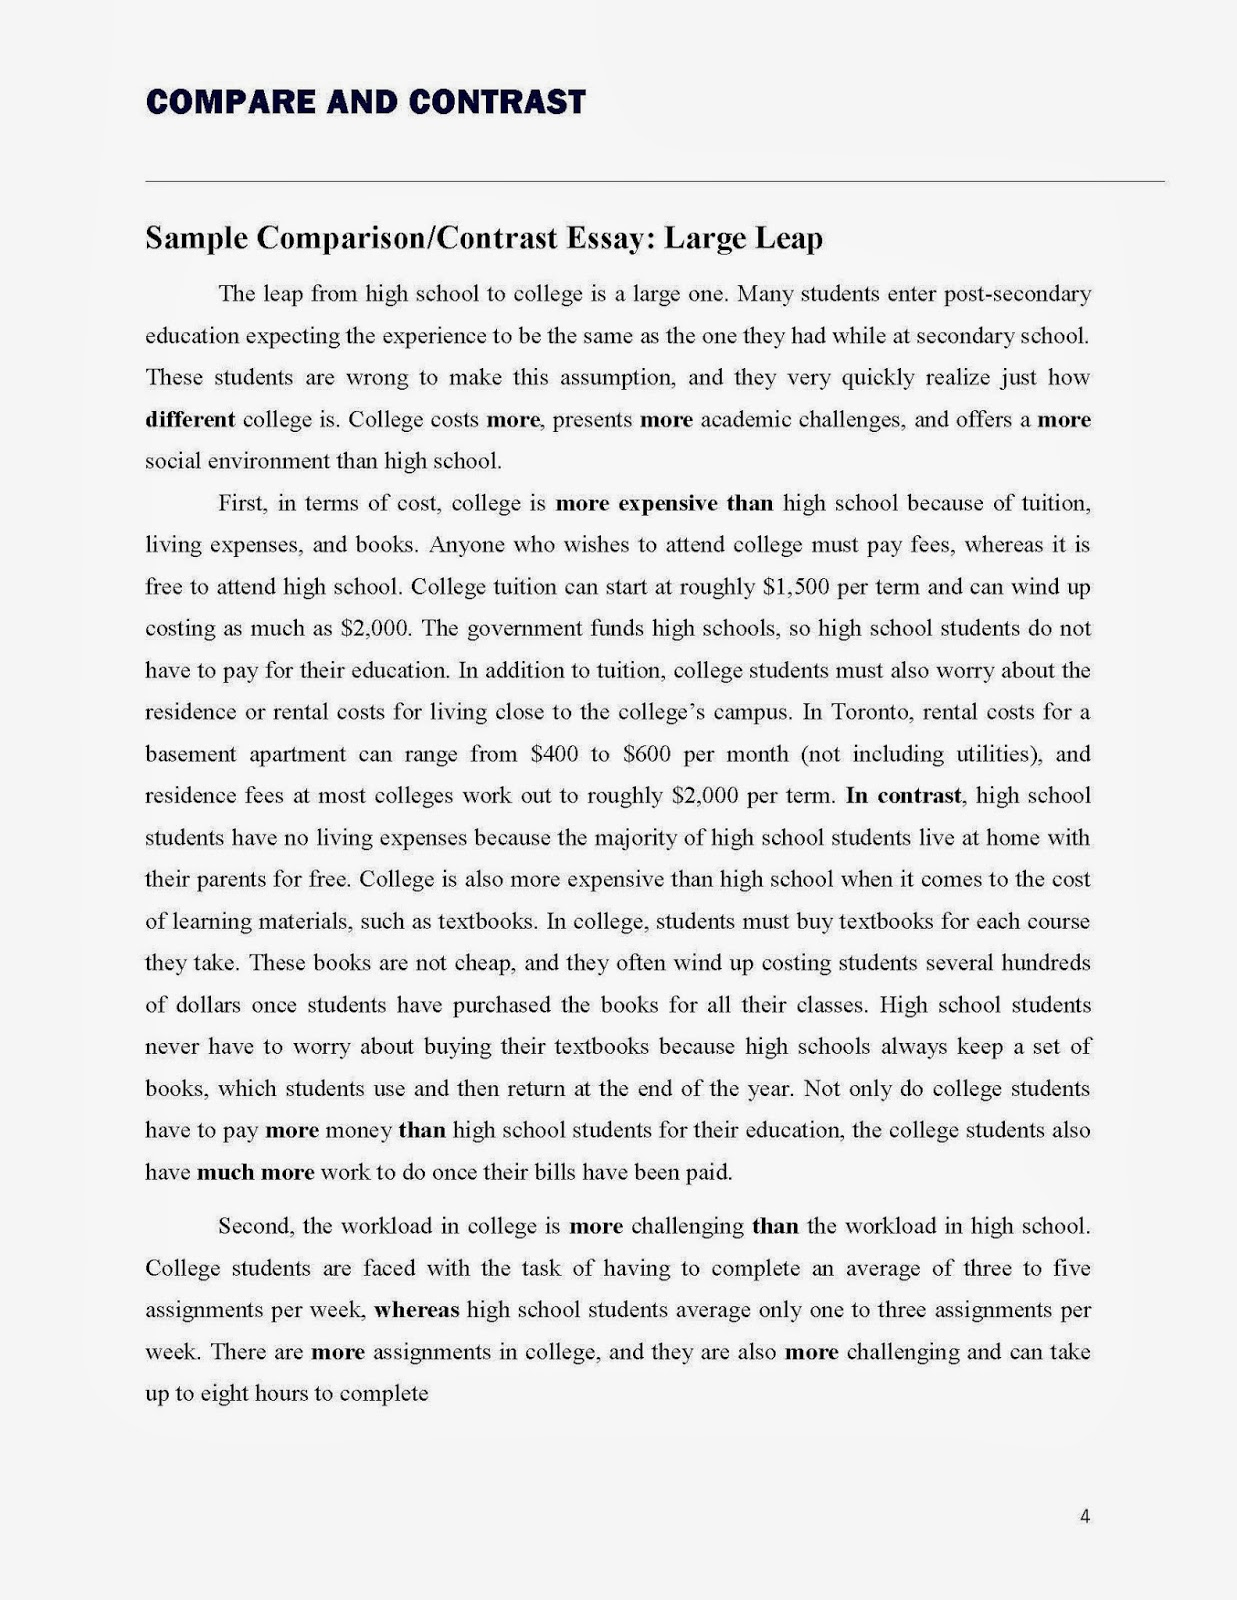 things to compare and contrast for an essay medea essay topics  compare contrast essay prompts compare contrast essay writing compare and contrast essay prompt liao ipnodns rucompare